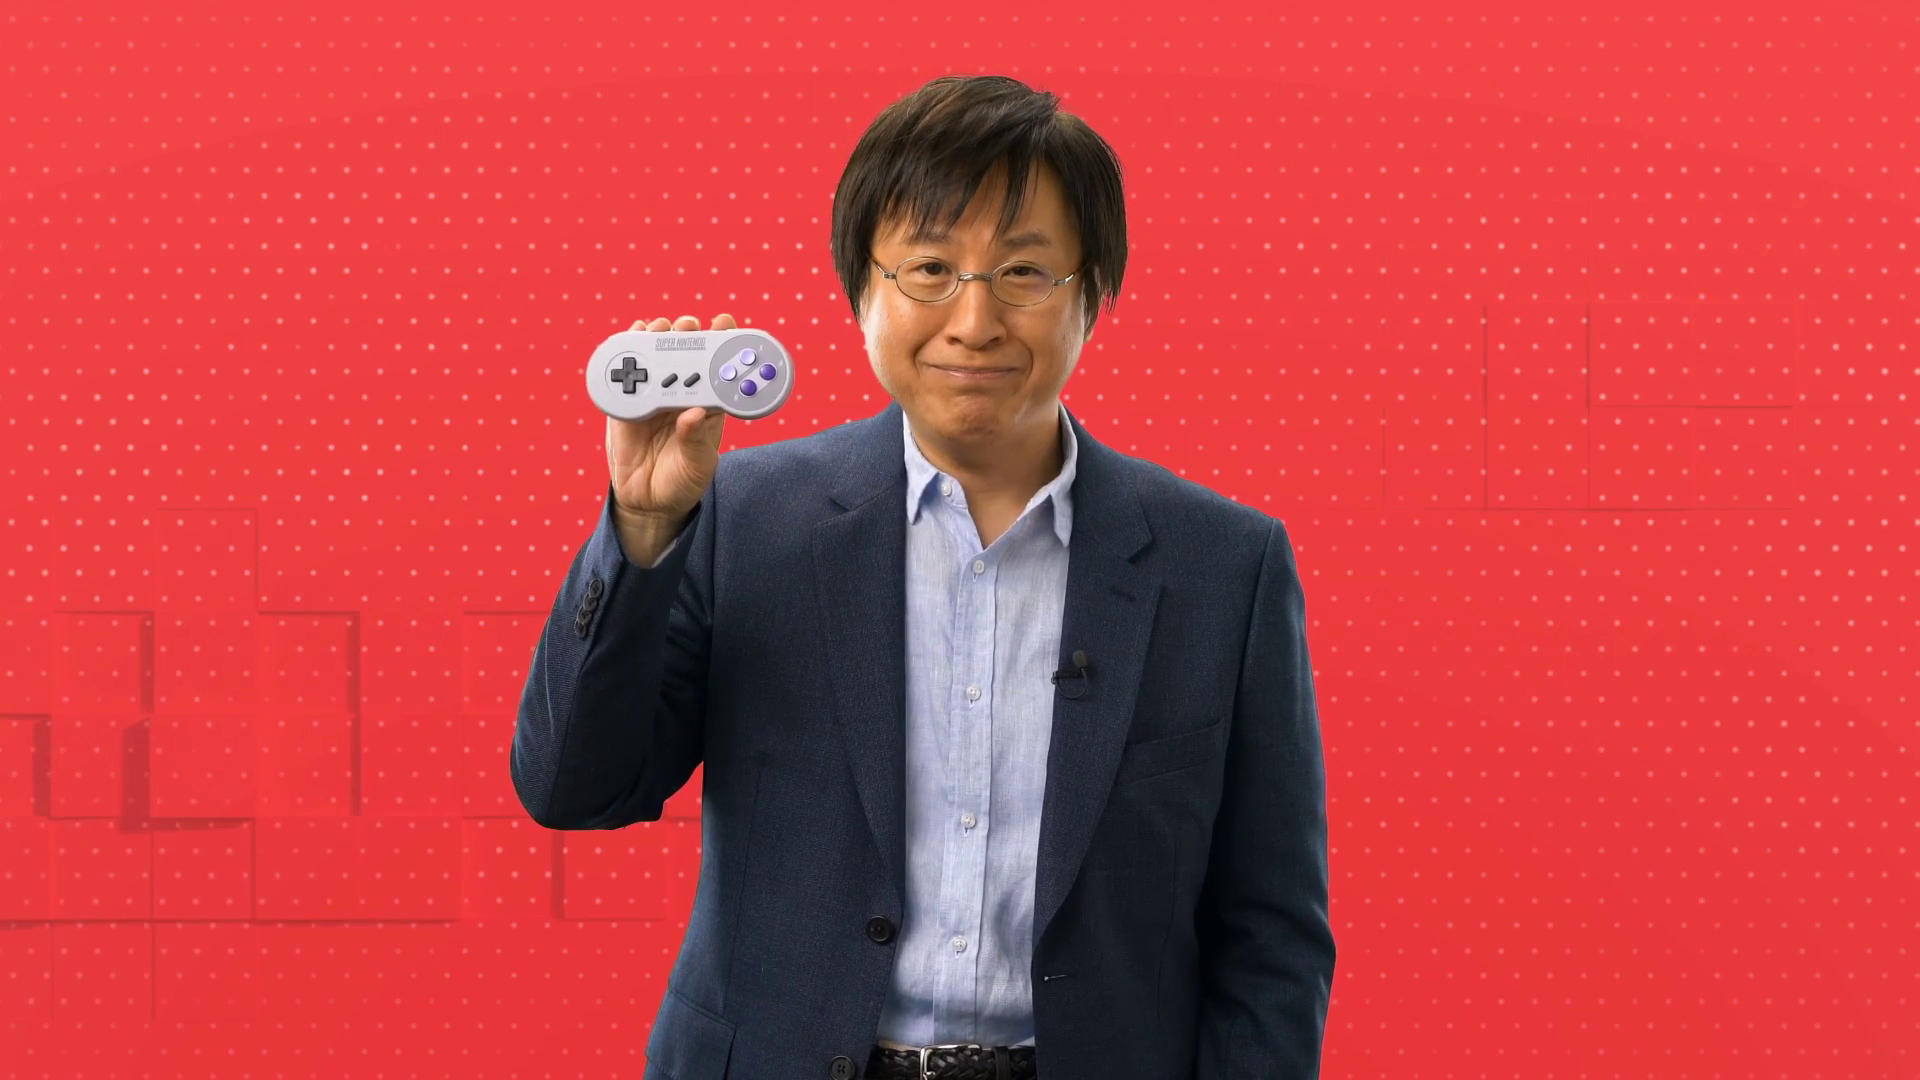 SNES-style wireless controllers confirmed for the Nintendo Switch